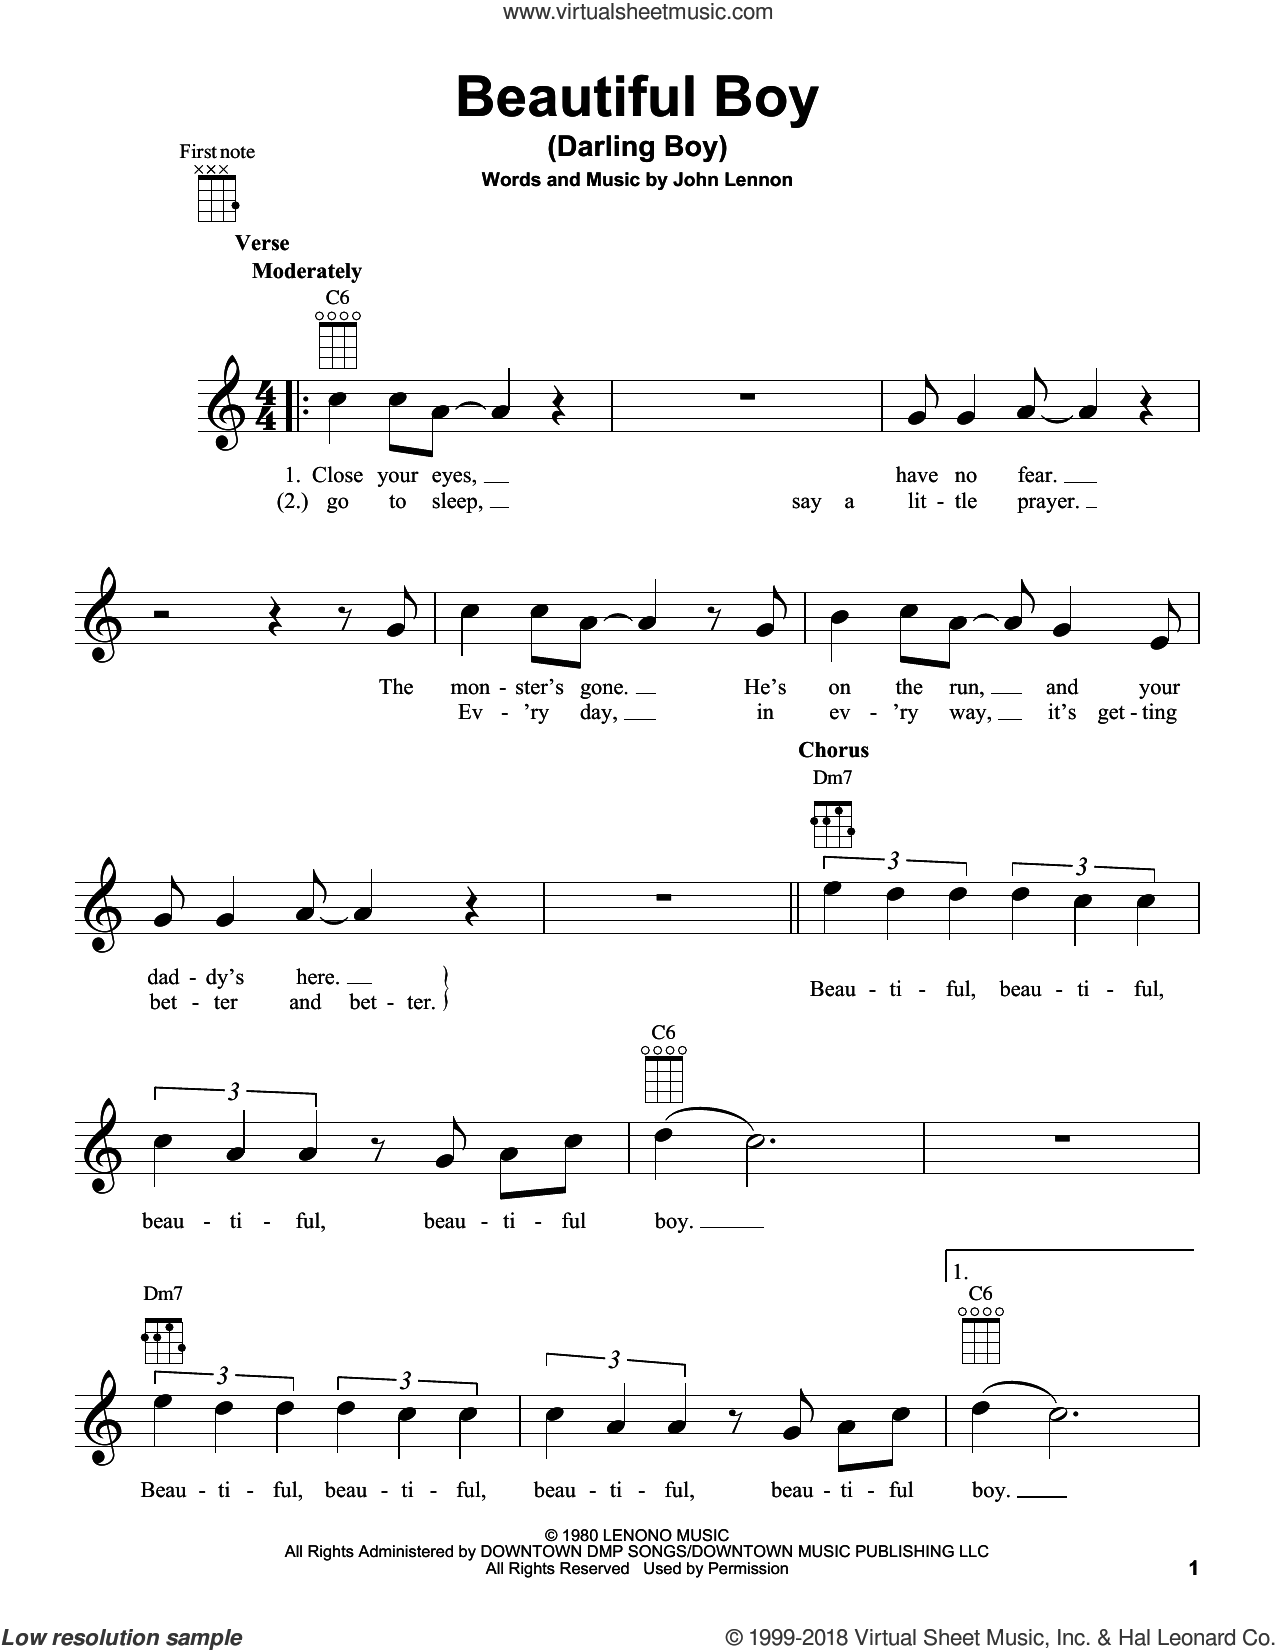 Beautiful Boy (Darling Boy) sheet music for ukulele by John Lennon, intermediate skill level